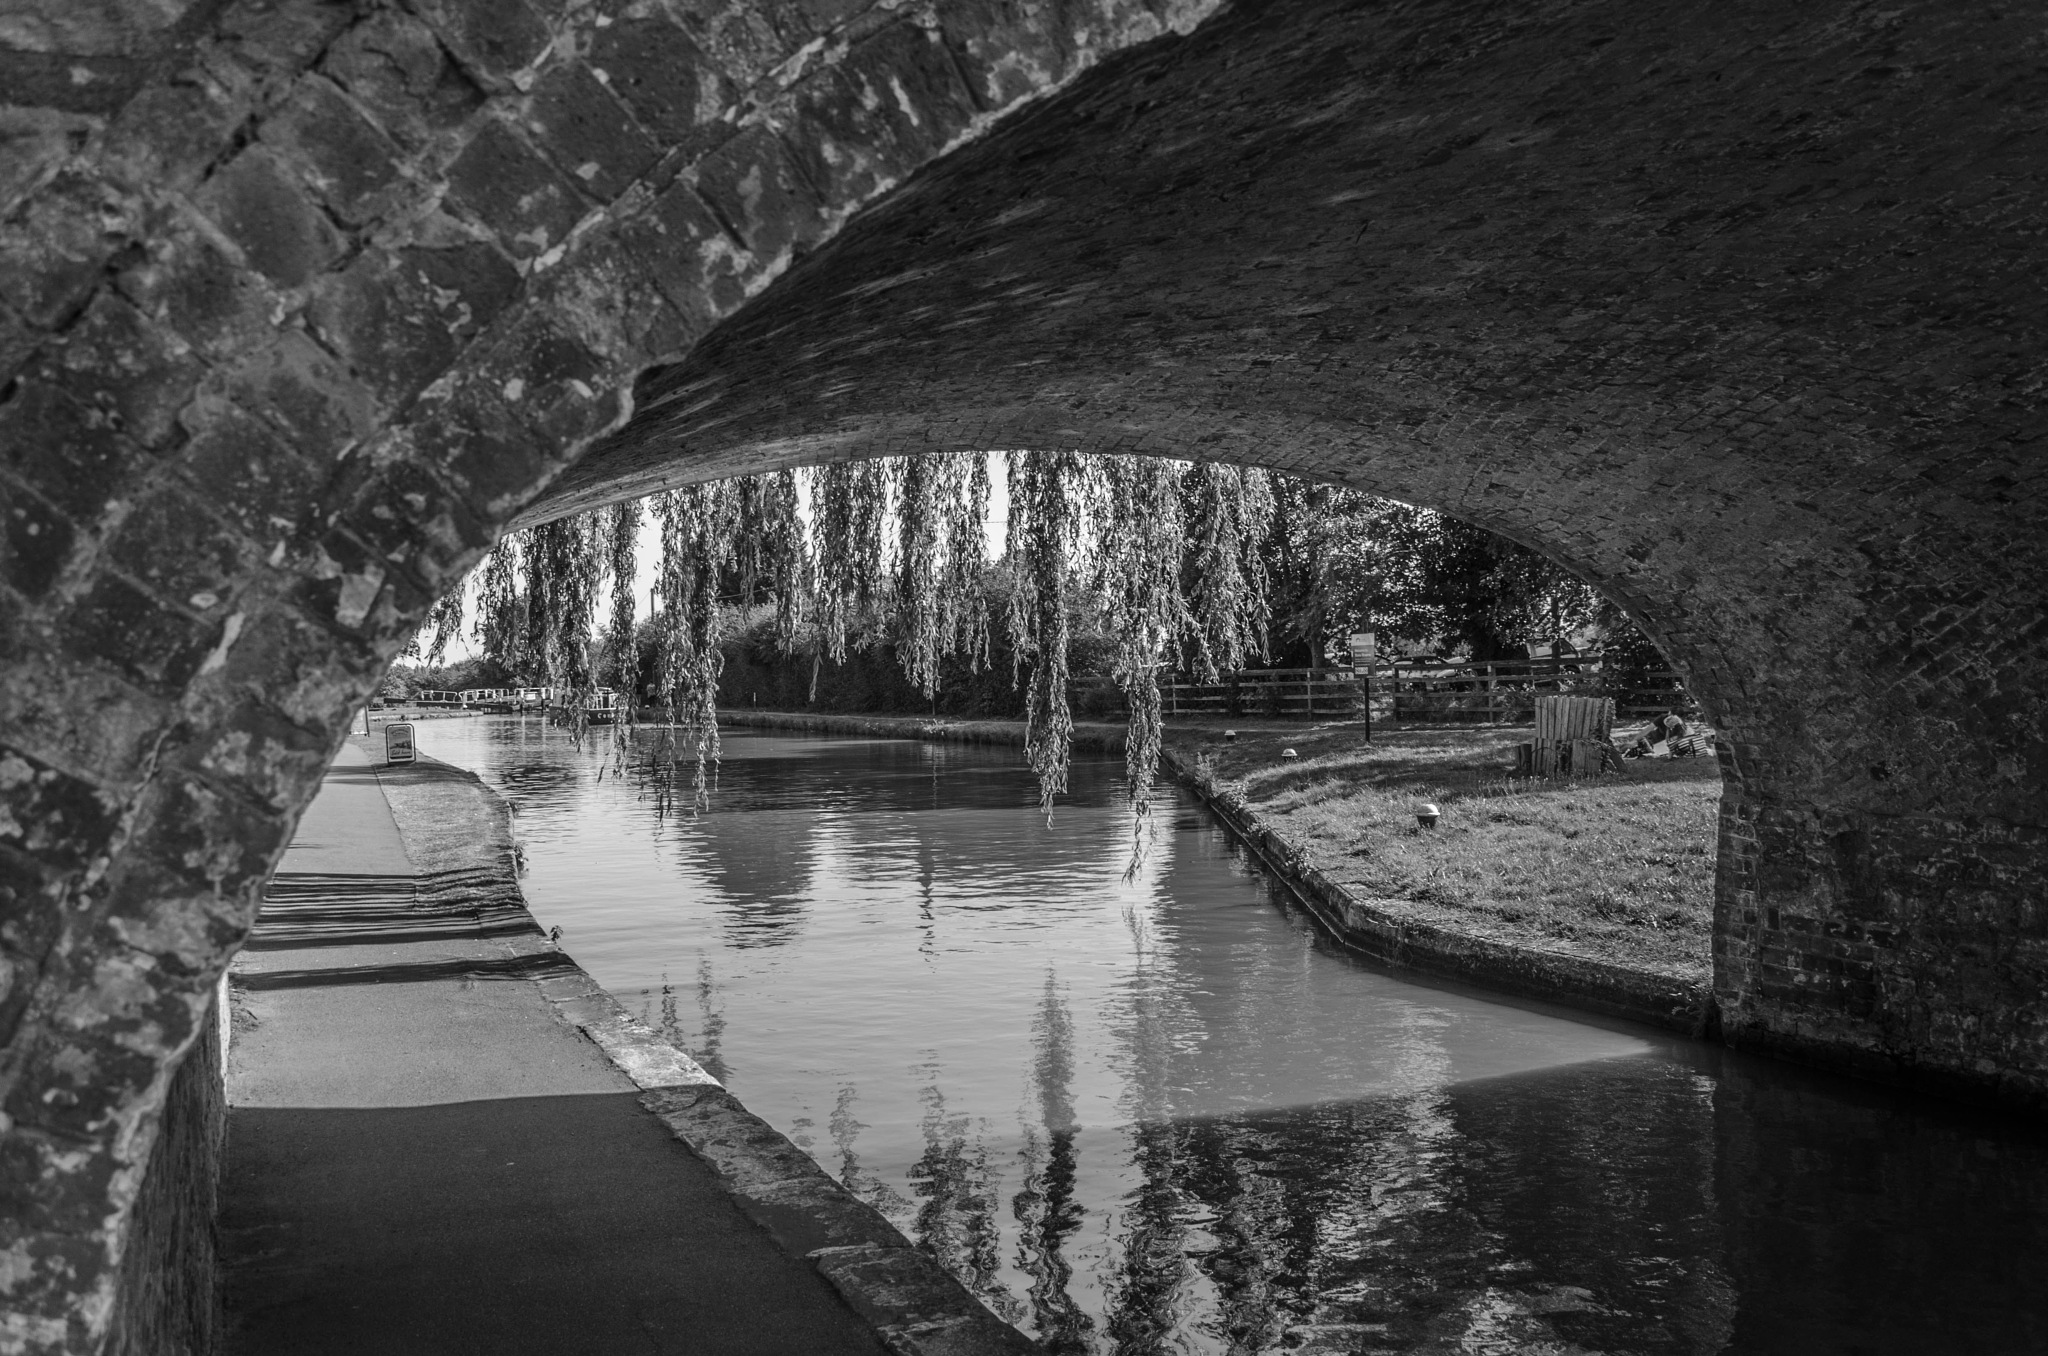 Grand Union canal in mono by Daveboy Fry